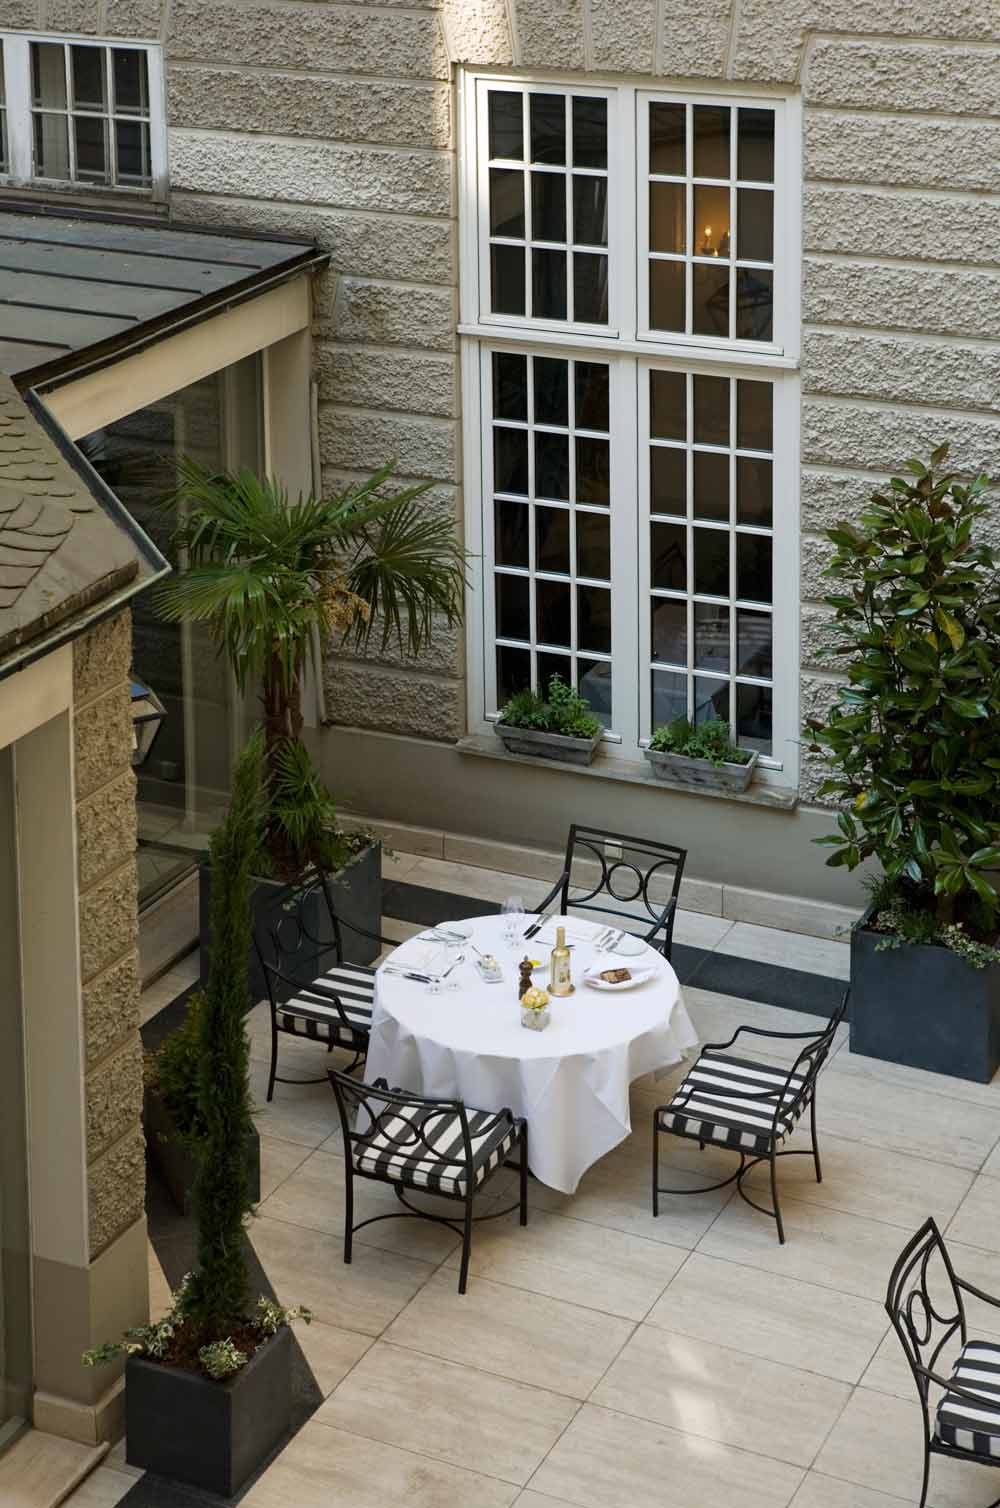 Courtyard Terrace at Excelsior Hotel Ernst in Cologne, North-Rhein Westphalia, Germany